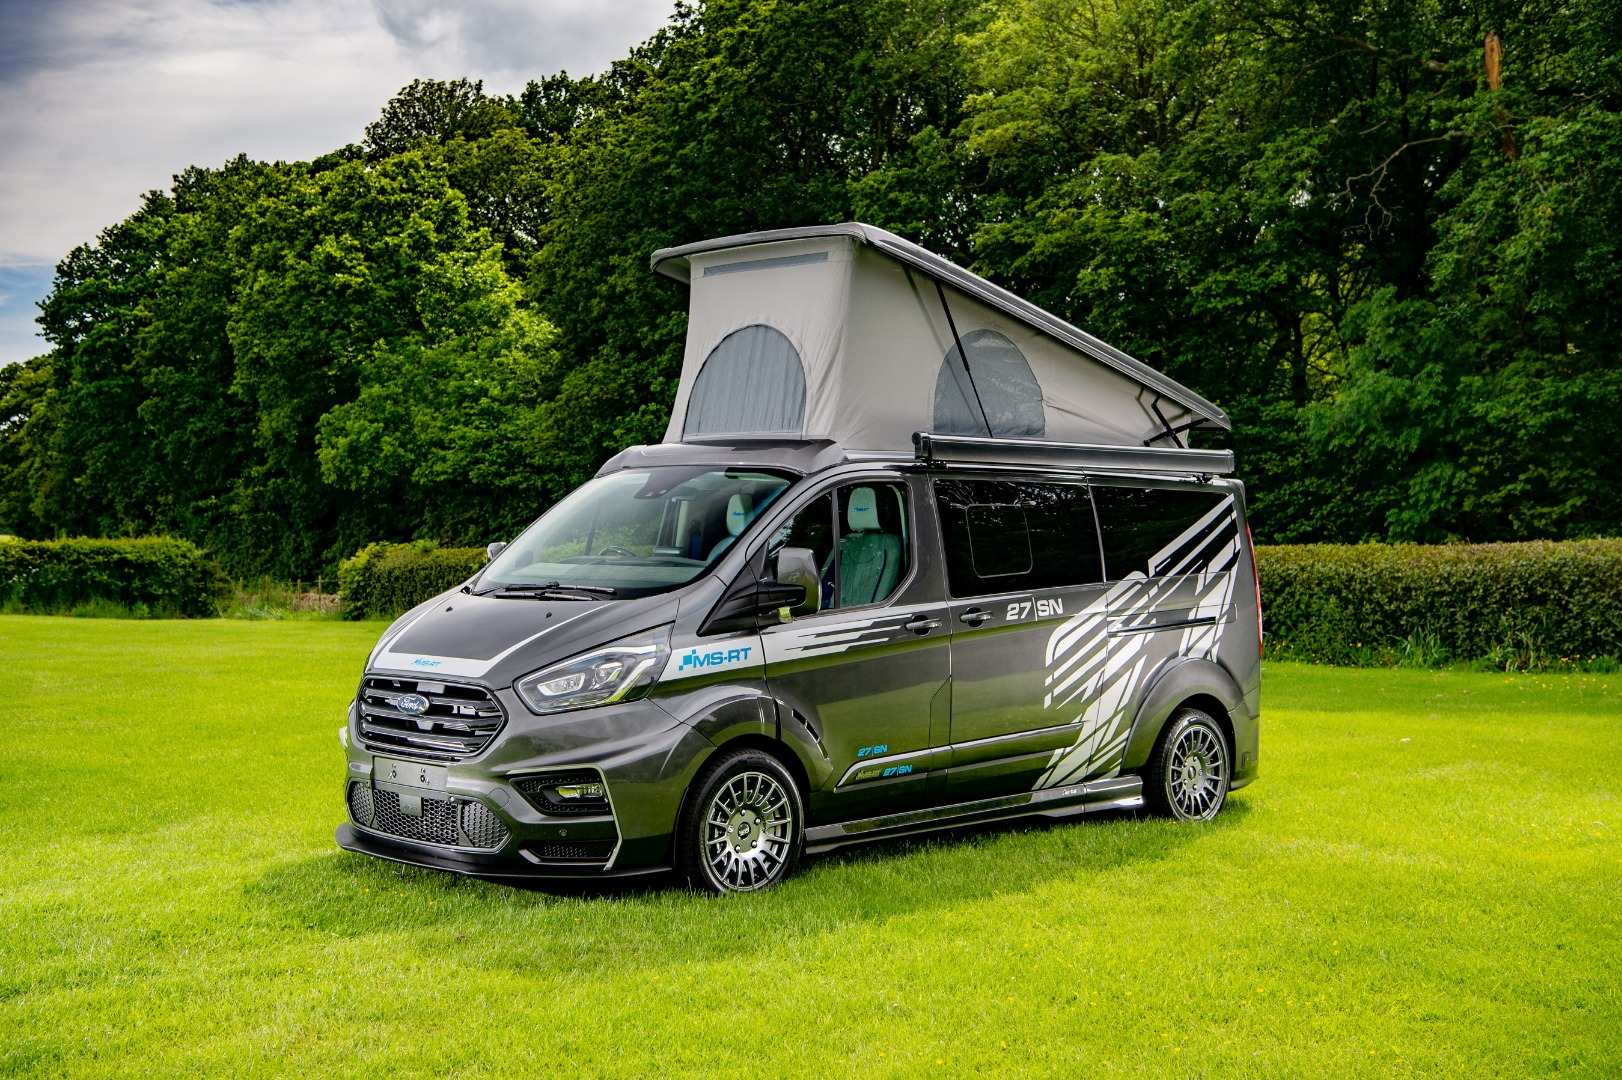 Ford Transit Custom campervan conversion combines sporty looks and luxury traveling